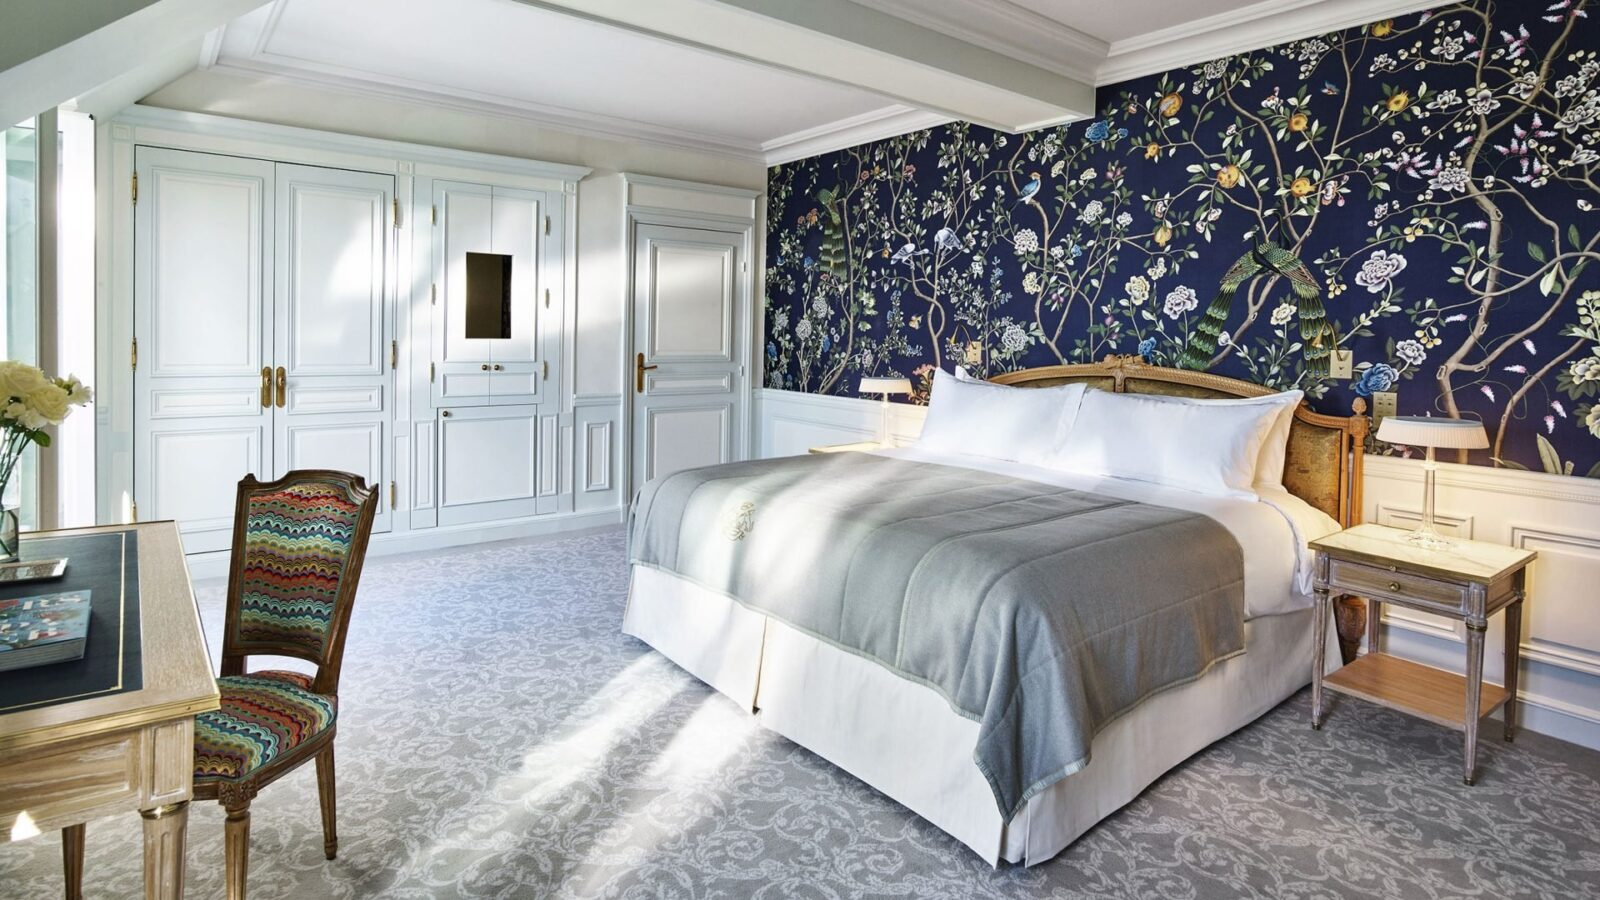 Executive Room, Park view with balcony - Le Meurice